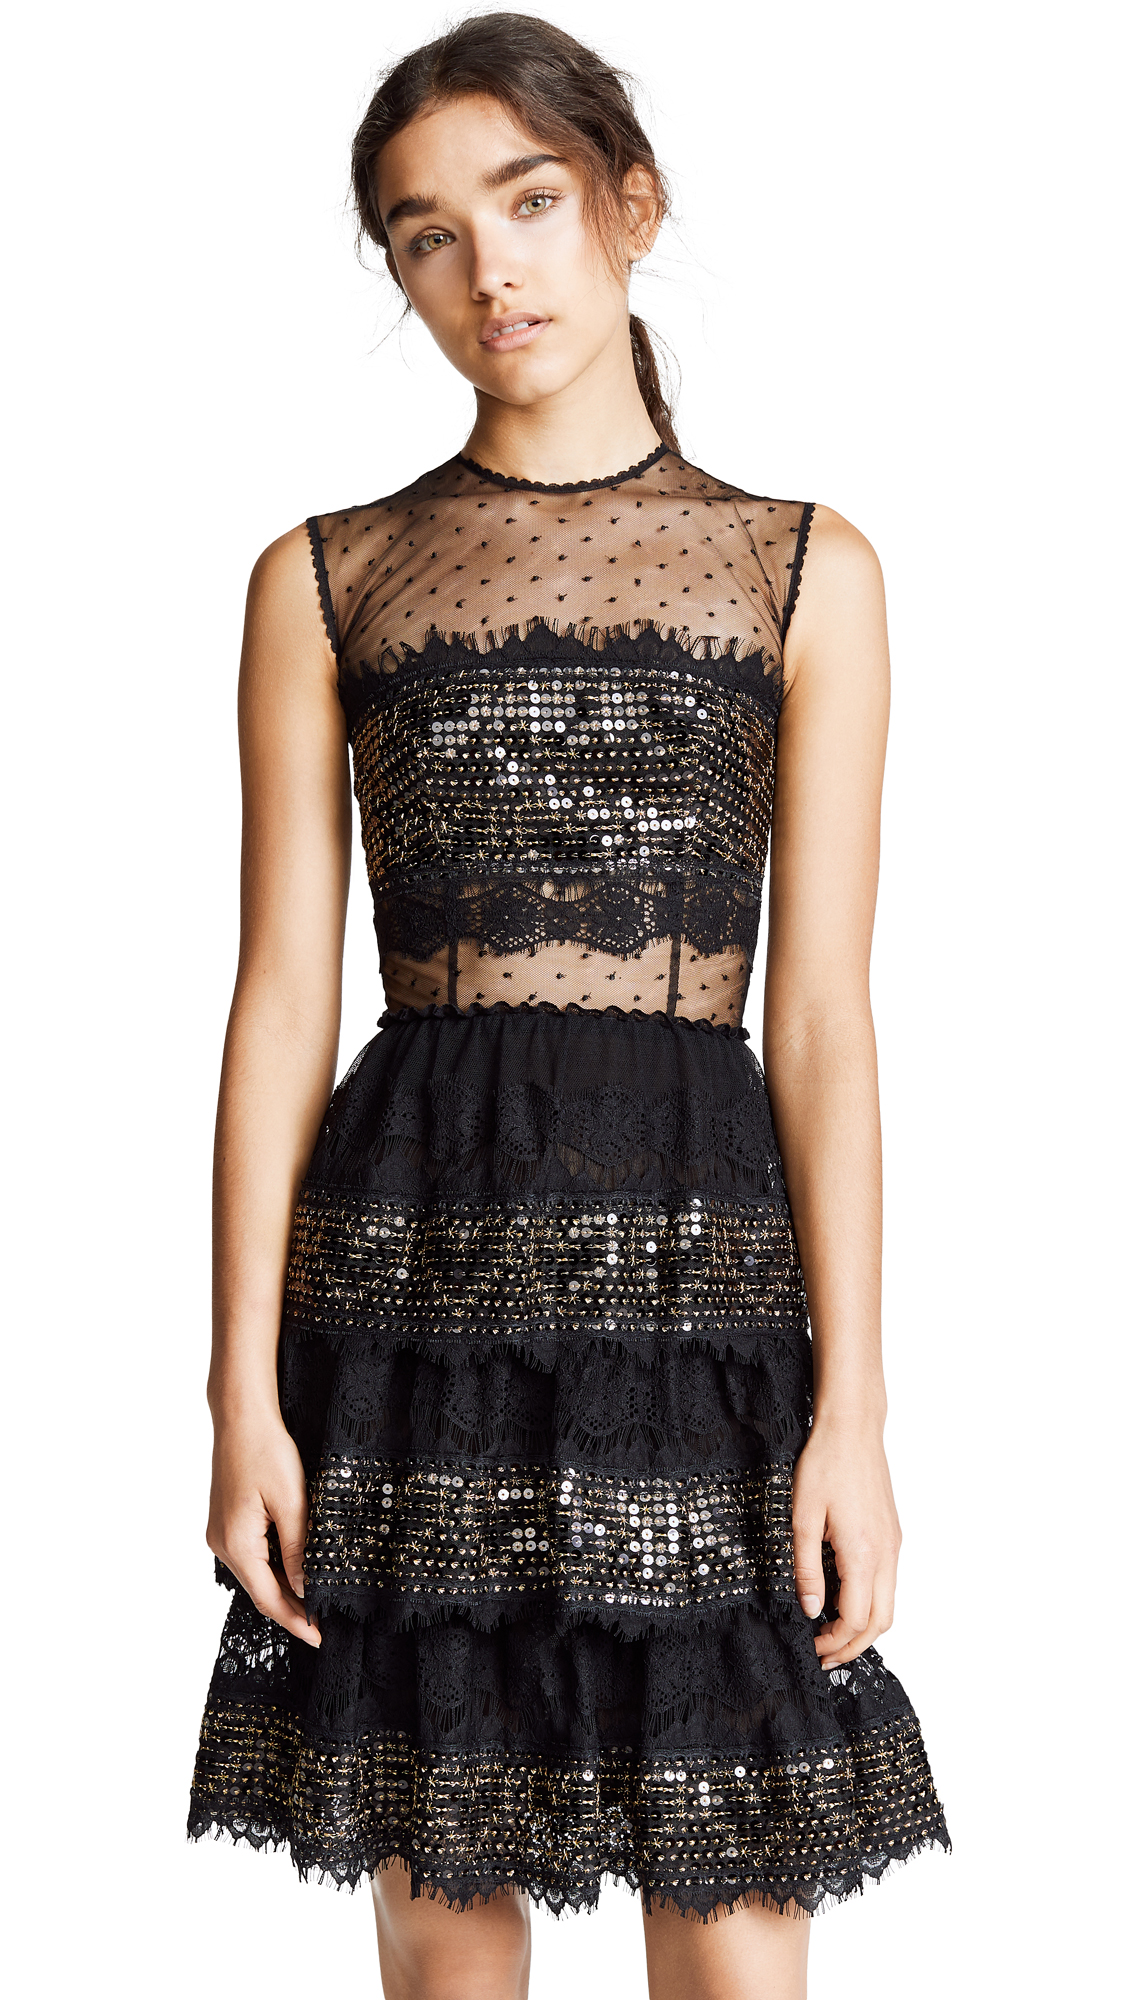 COSTARELLOS Long Layered Dress With Sequin Panels in Black/Gold